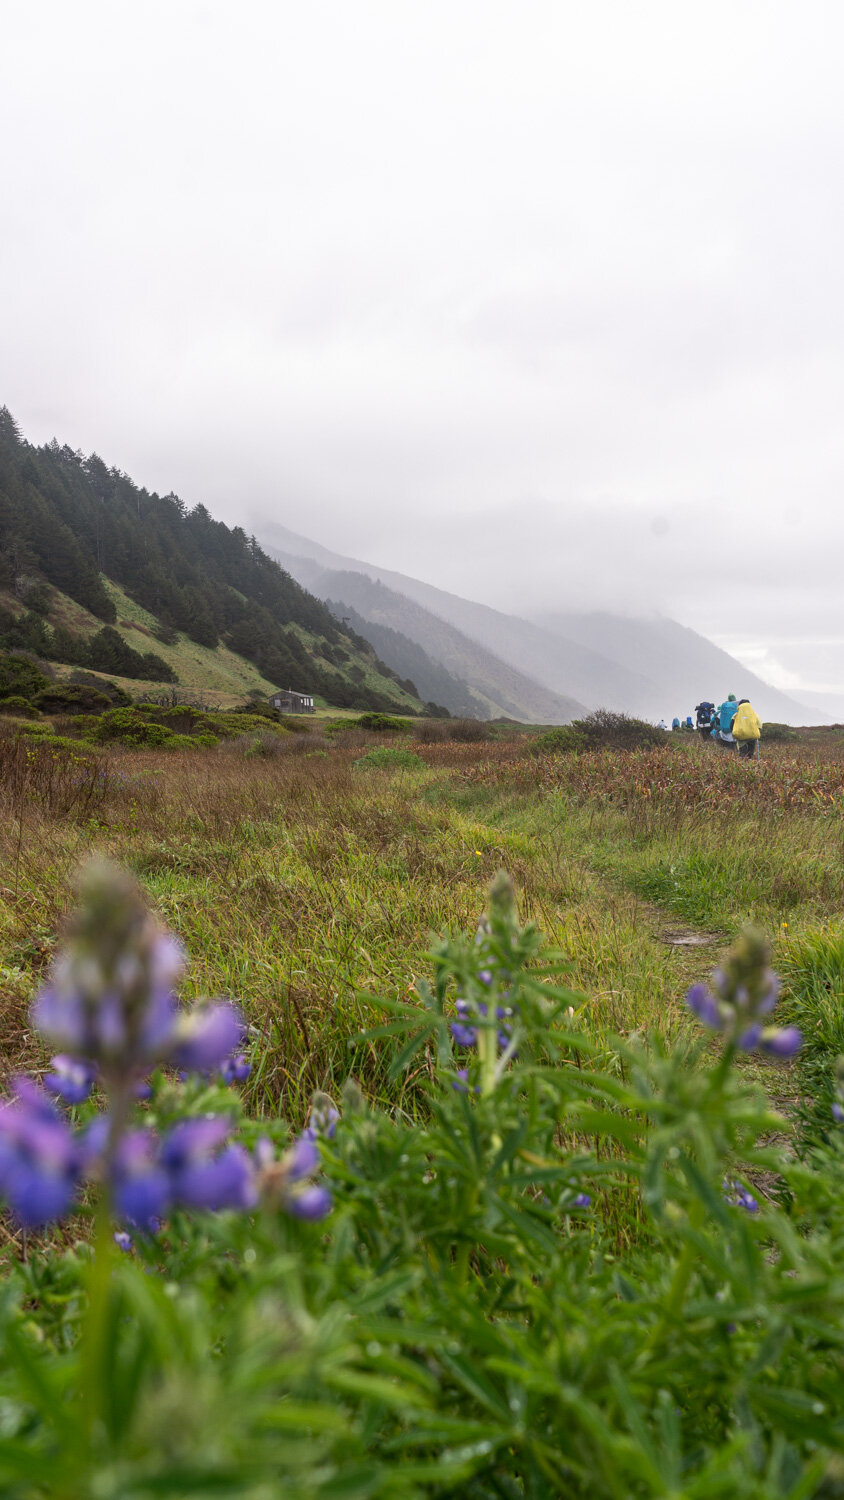 Backpacking the Lost Coast Trail in spring for wildflowers